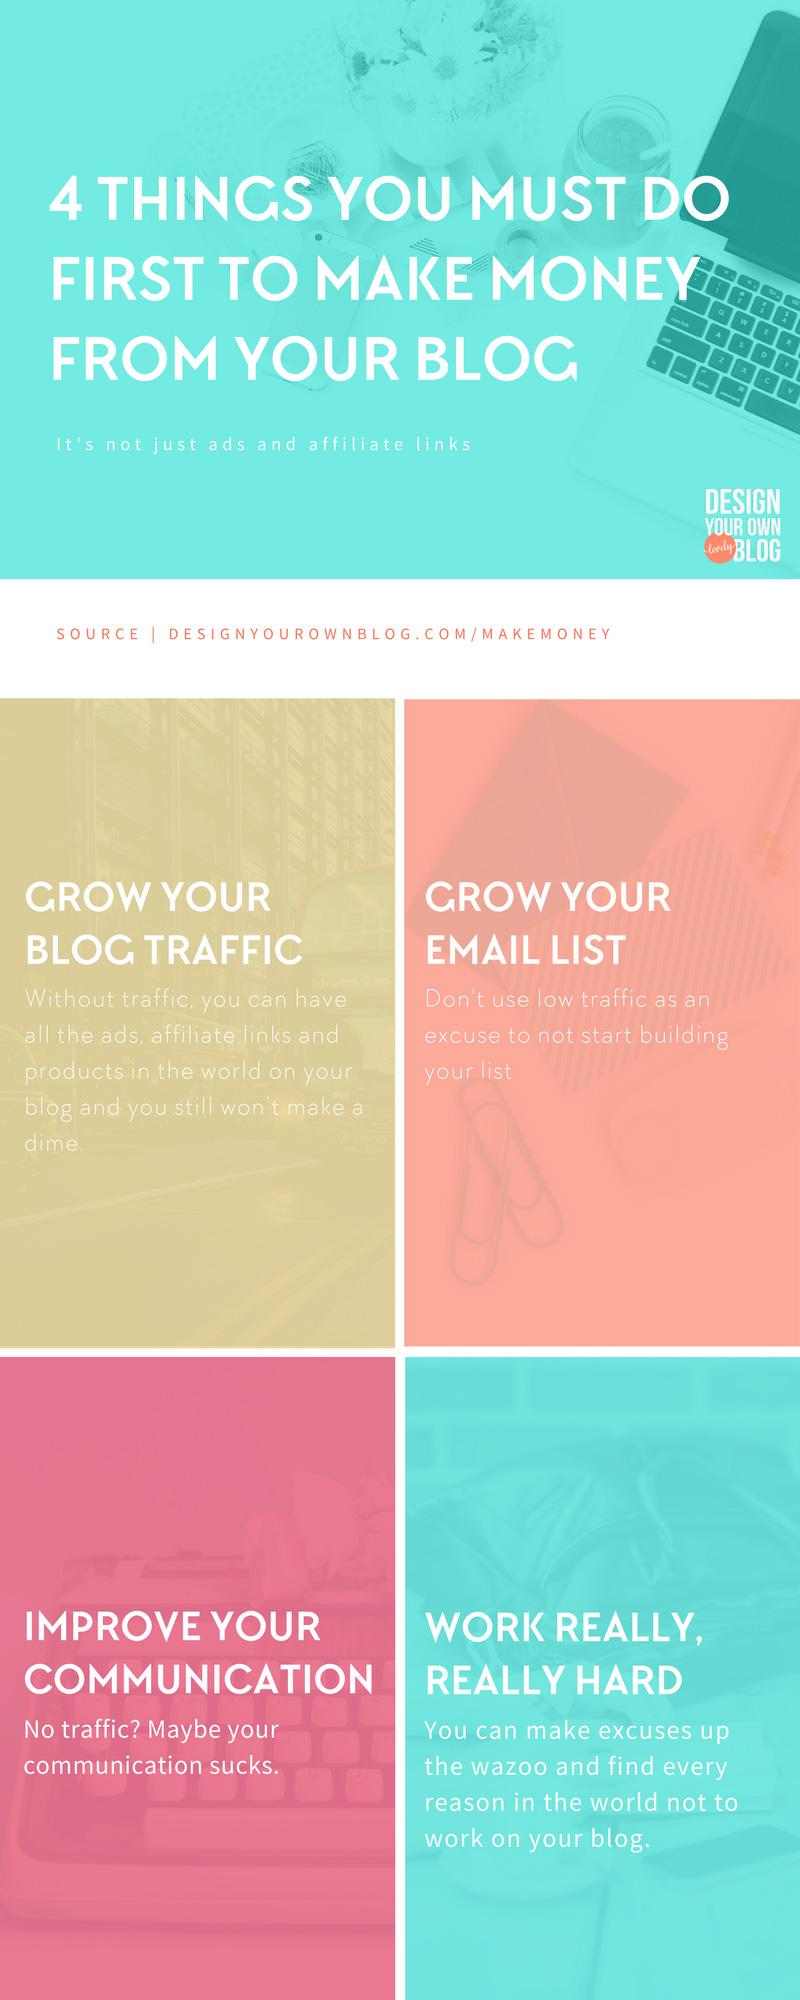 Have you struggled to make money from your blog? If so, this is the post for you, because I want to share four things you're probably not doing that explain why and what to do about it to start earning money from your blog soon. 4 Things You Must Do First to Make Money from Your Blog.